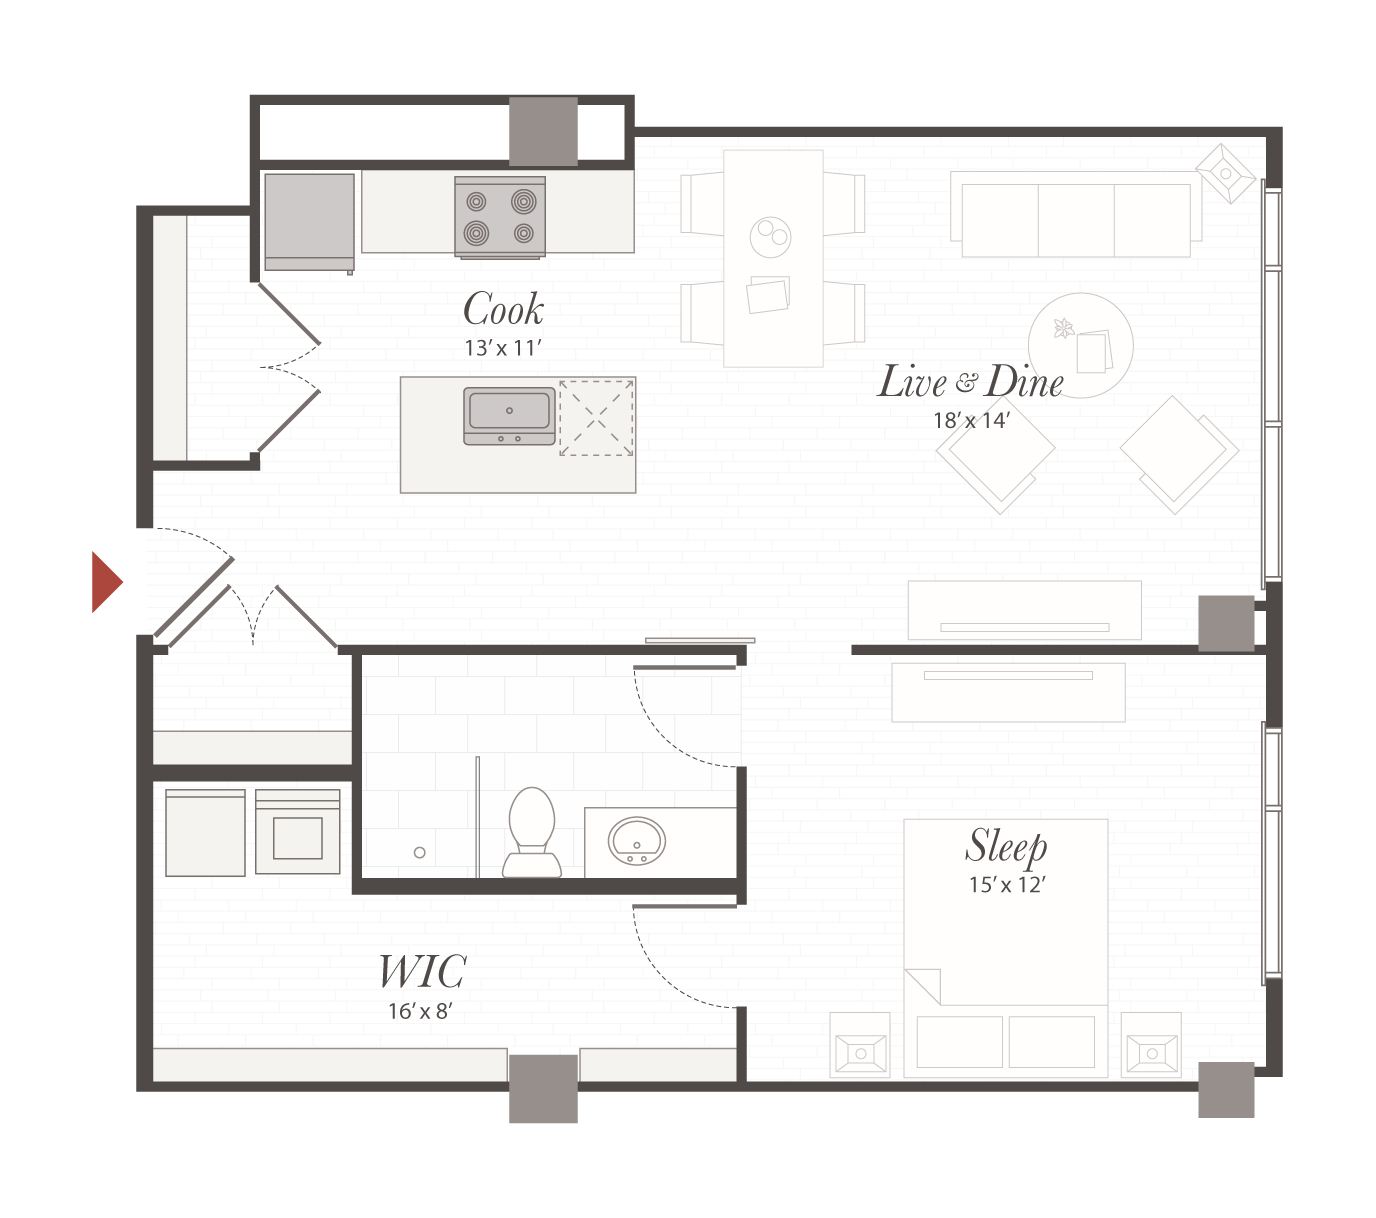 P7 Floor Plan 1 Bedroom Luxury Apartment Cincinnati Oh